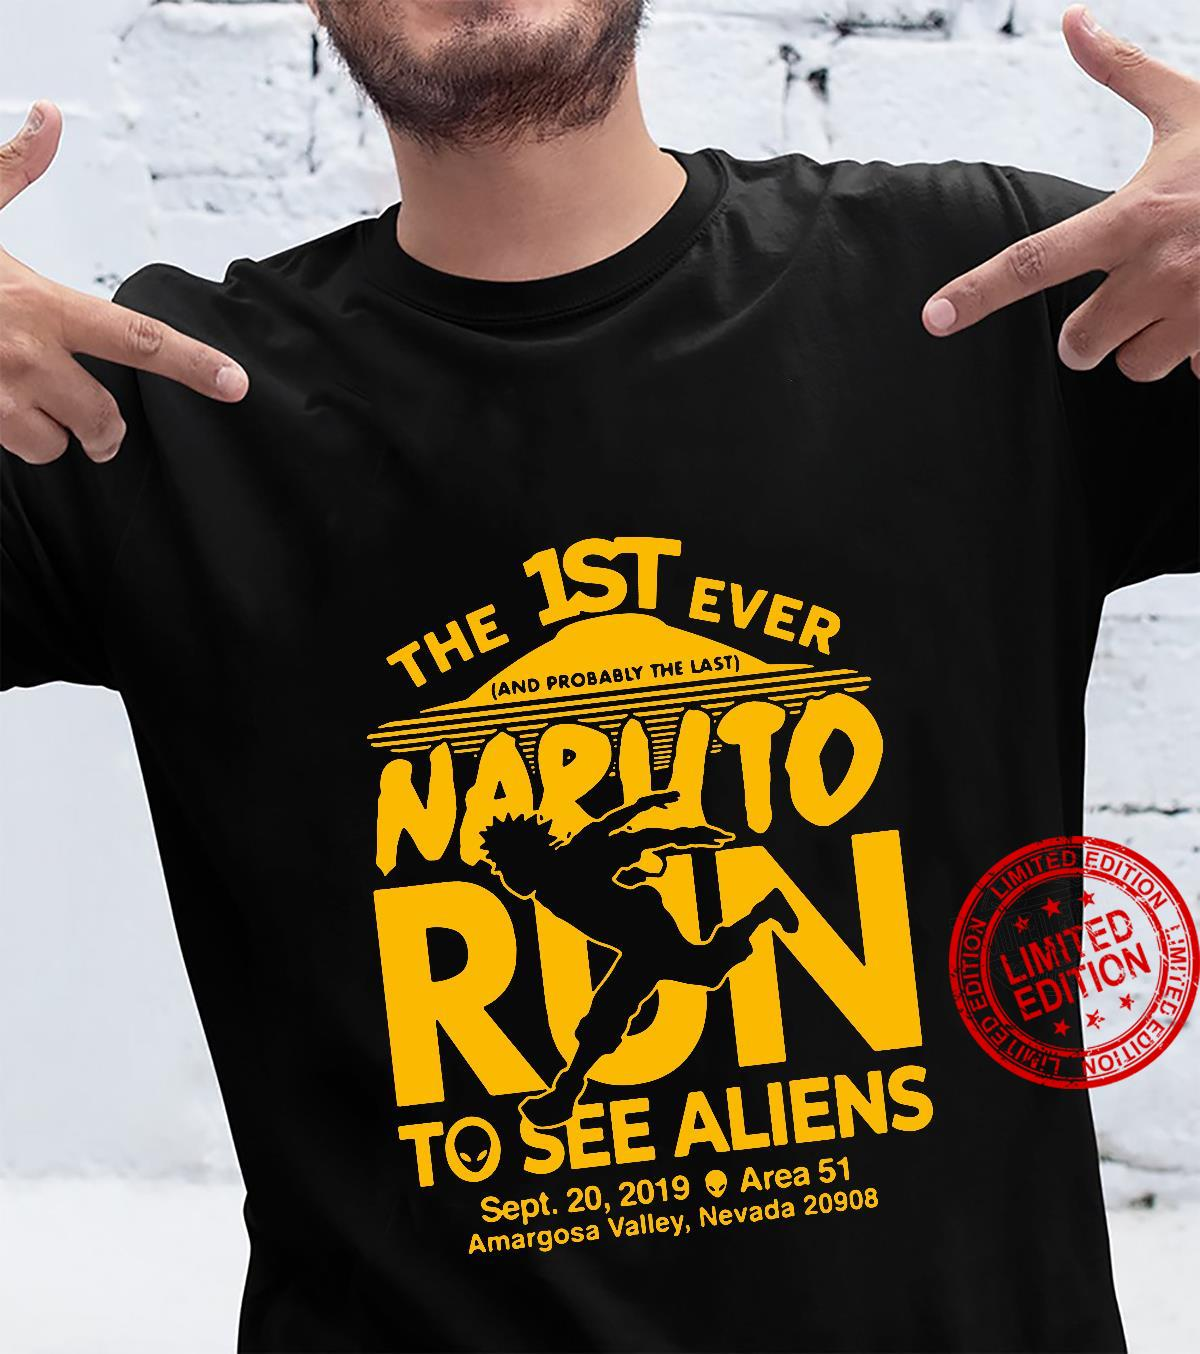 The 1st ever Naruto Run to see Aliens Shirt